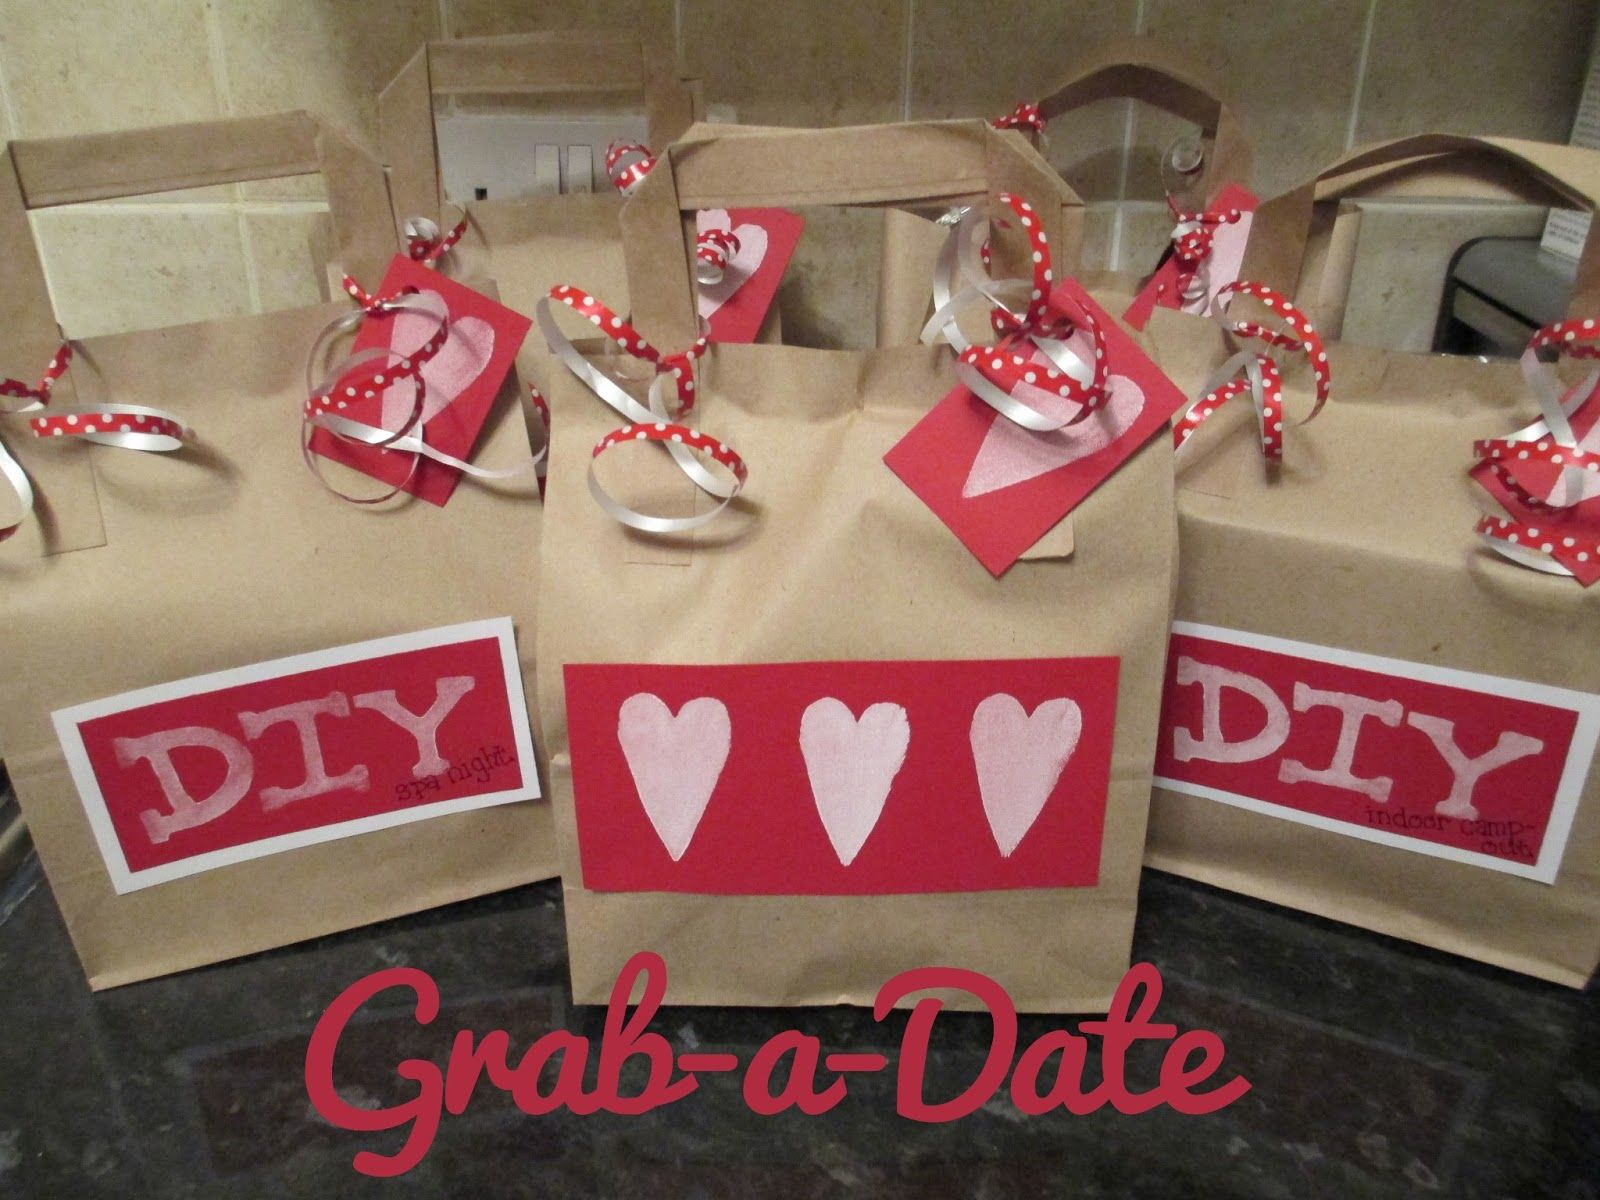 Grab a date gift bags date night gifts gifts christmas